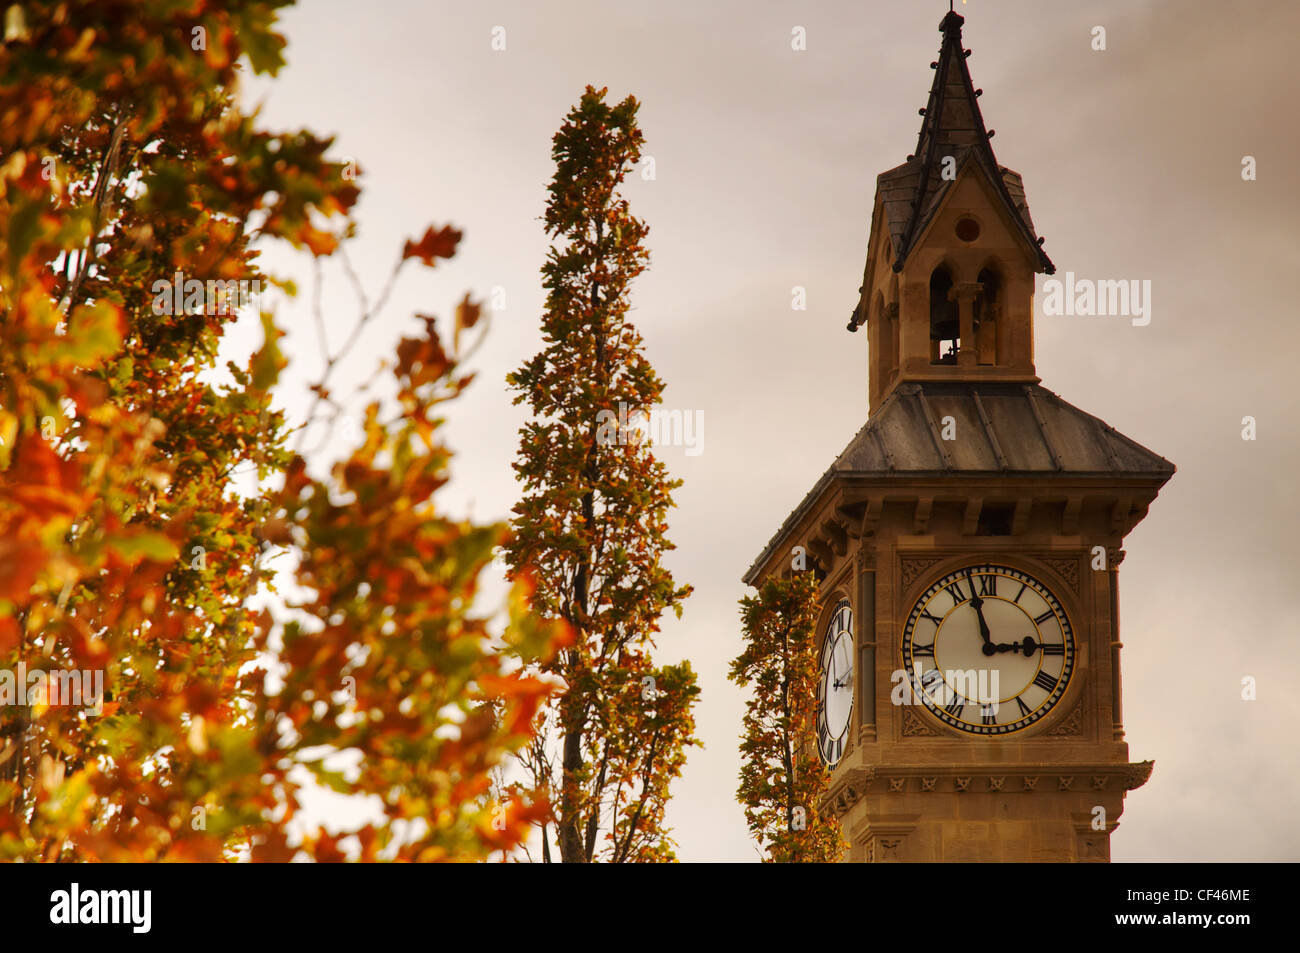 The town centre clock tower in Barnstaple. - Stock Image